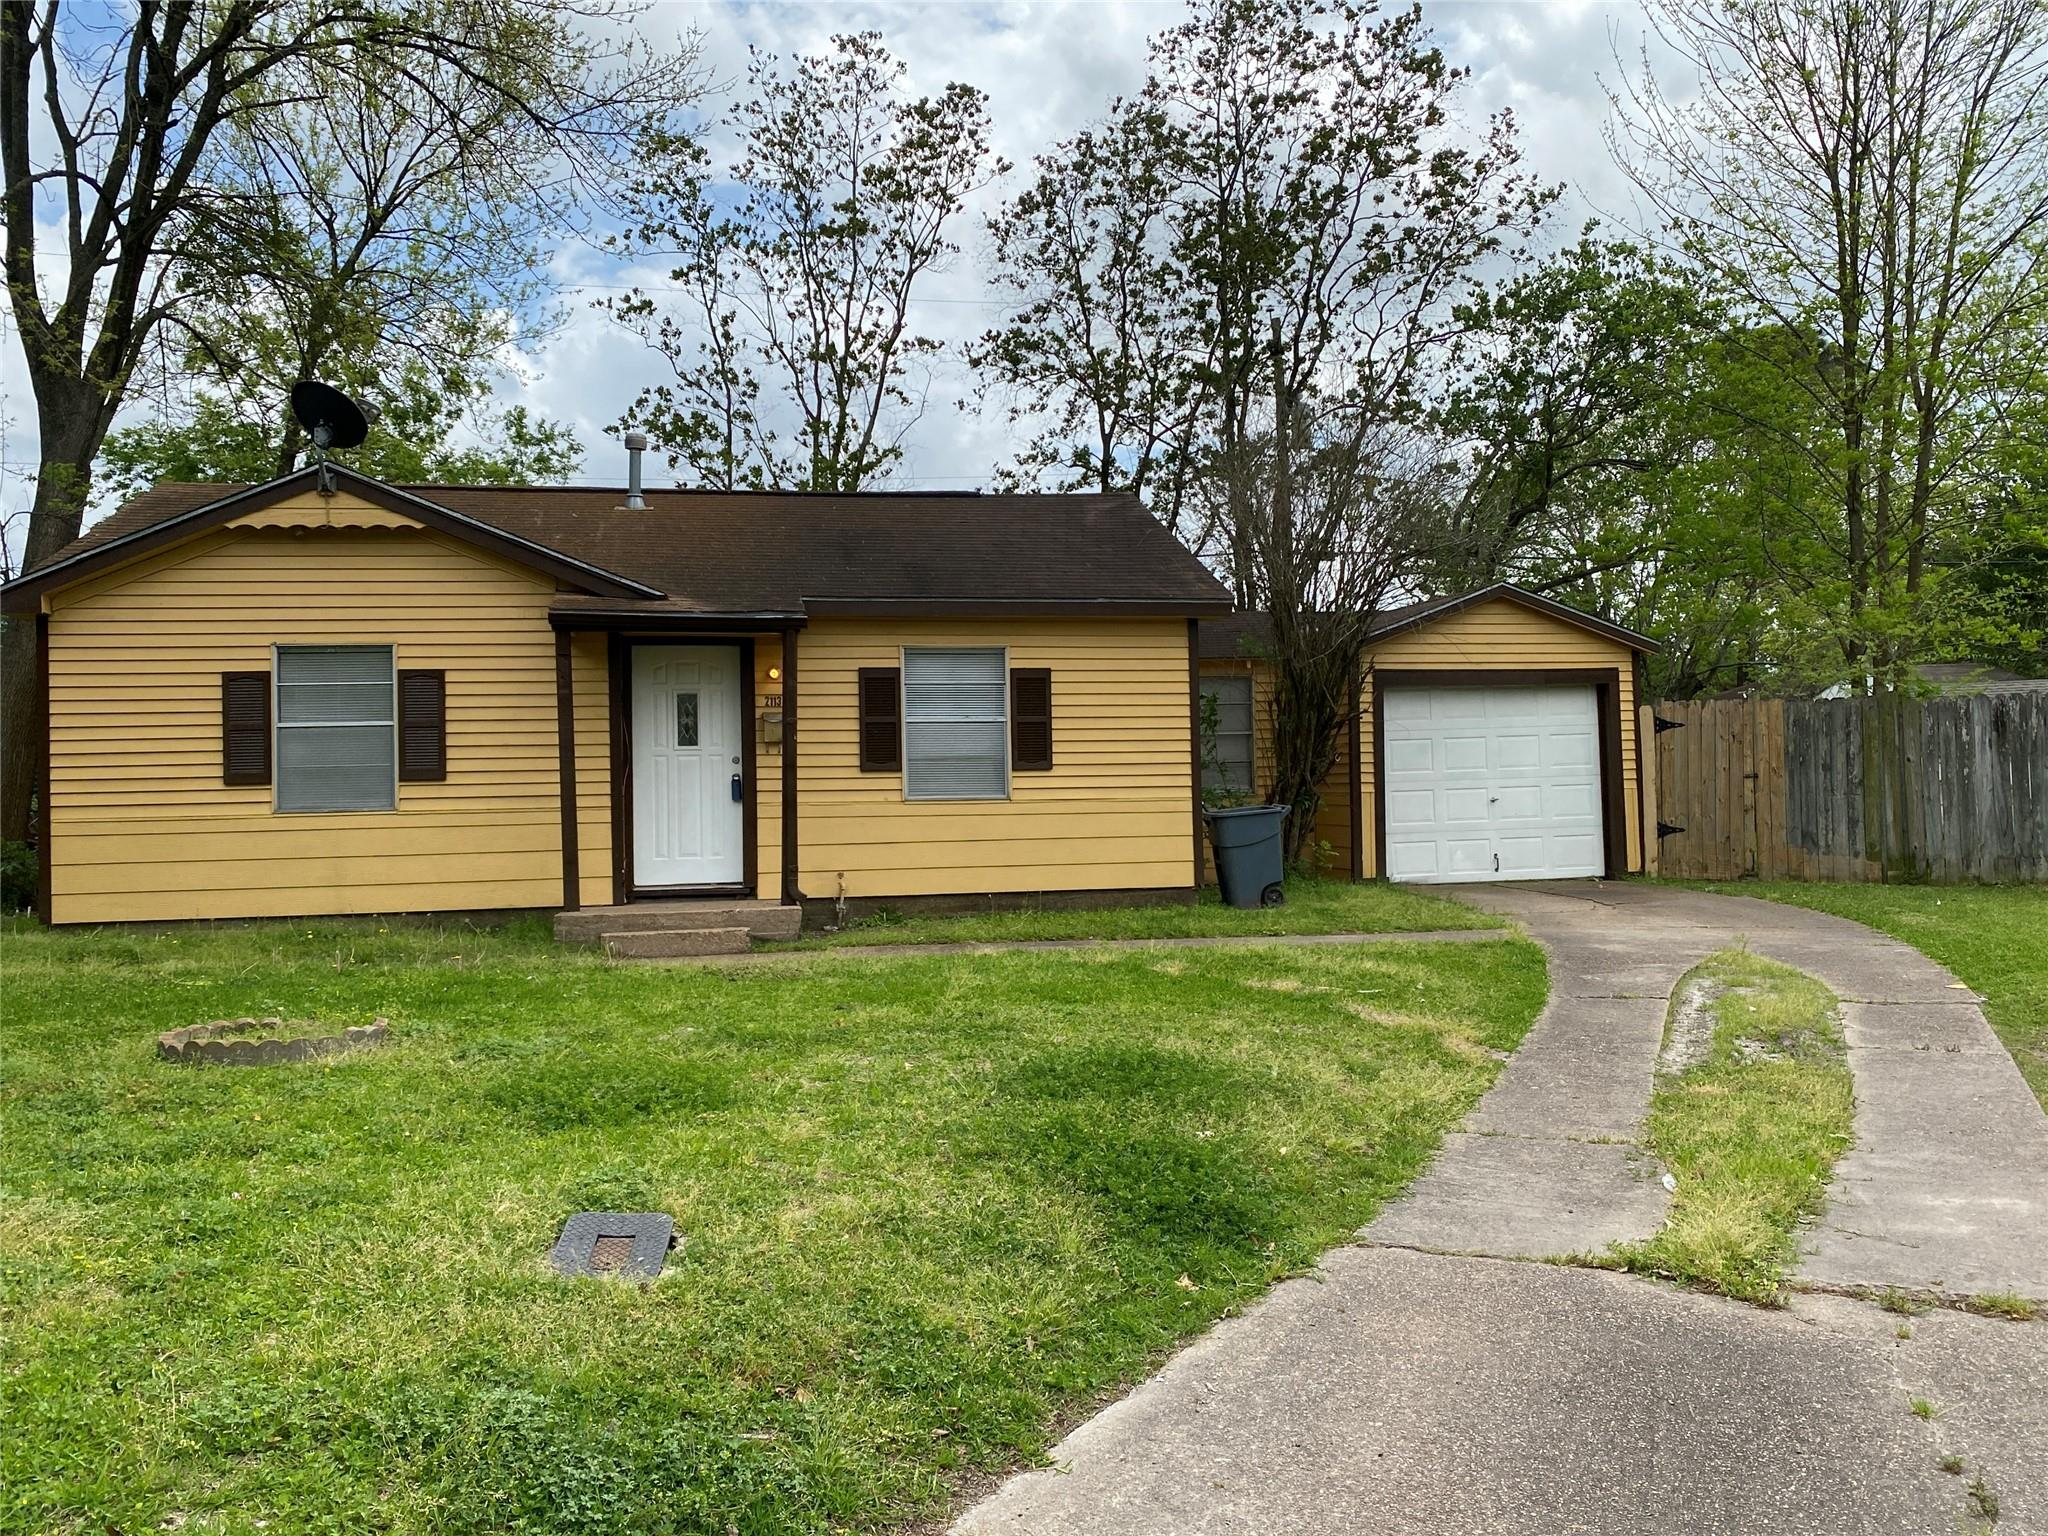 2113 2113 5TH ST Street Property Photo - Galena Park, TX real estate listing